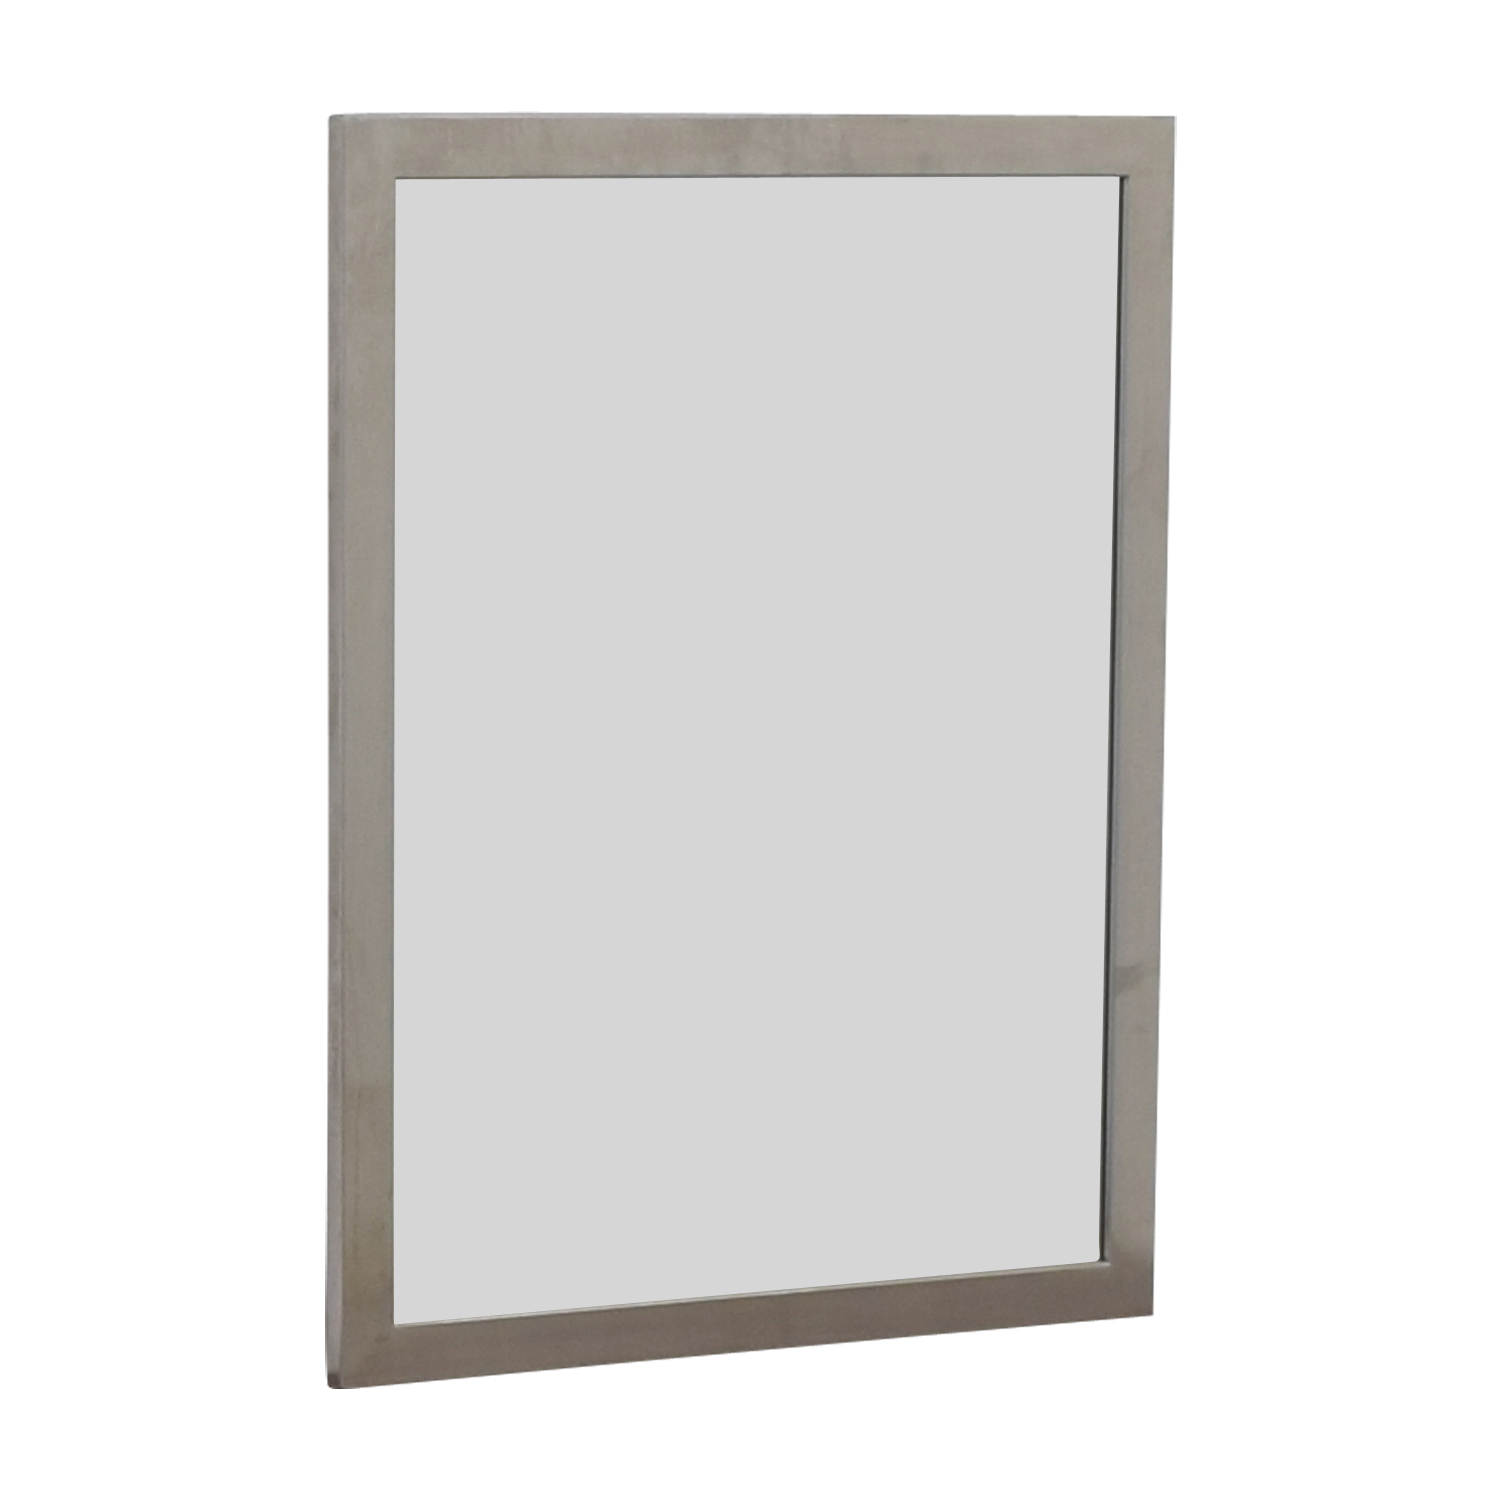 Silver Framed Wall Mirror discount